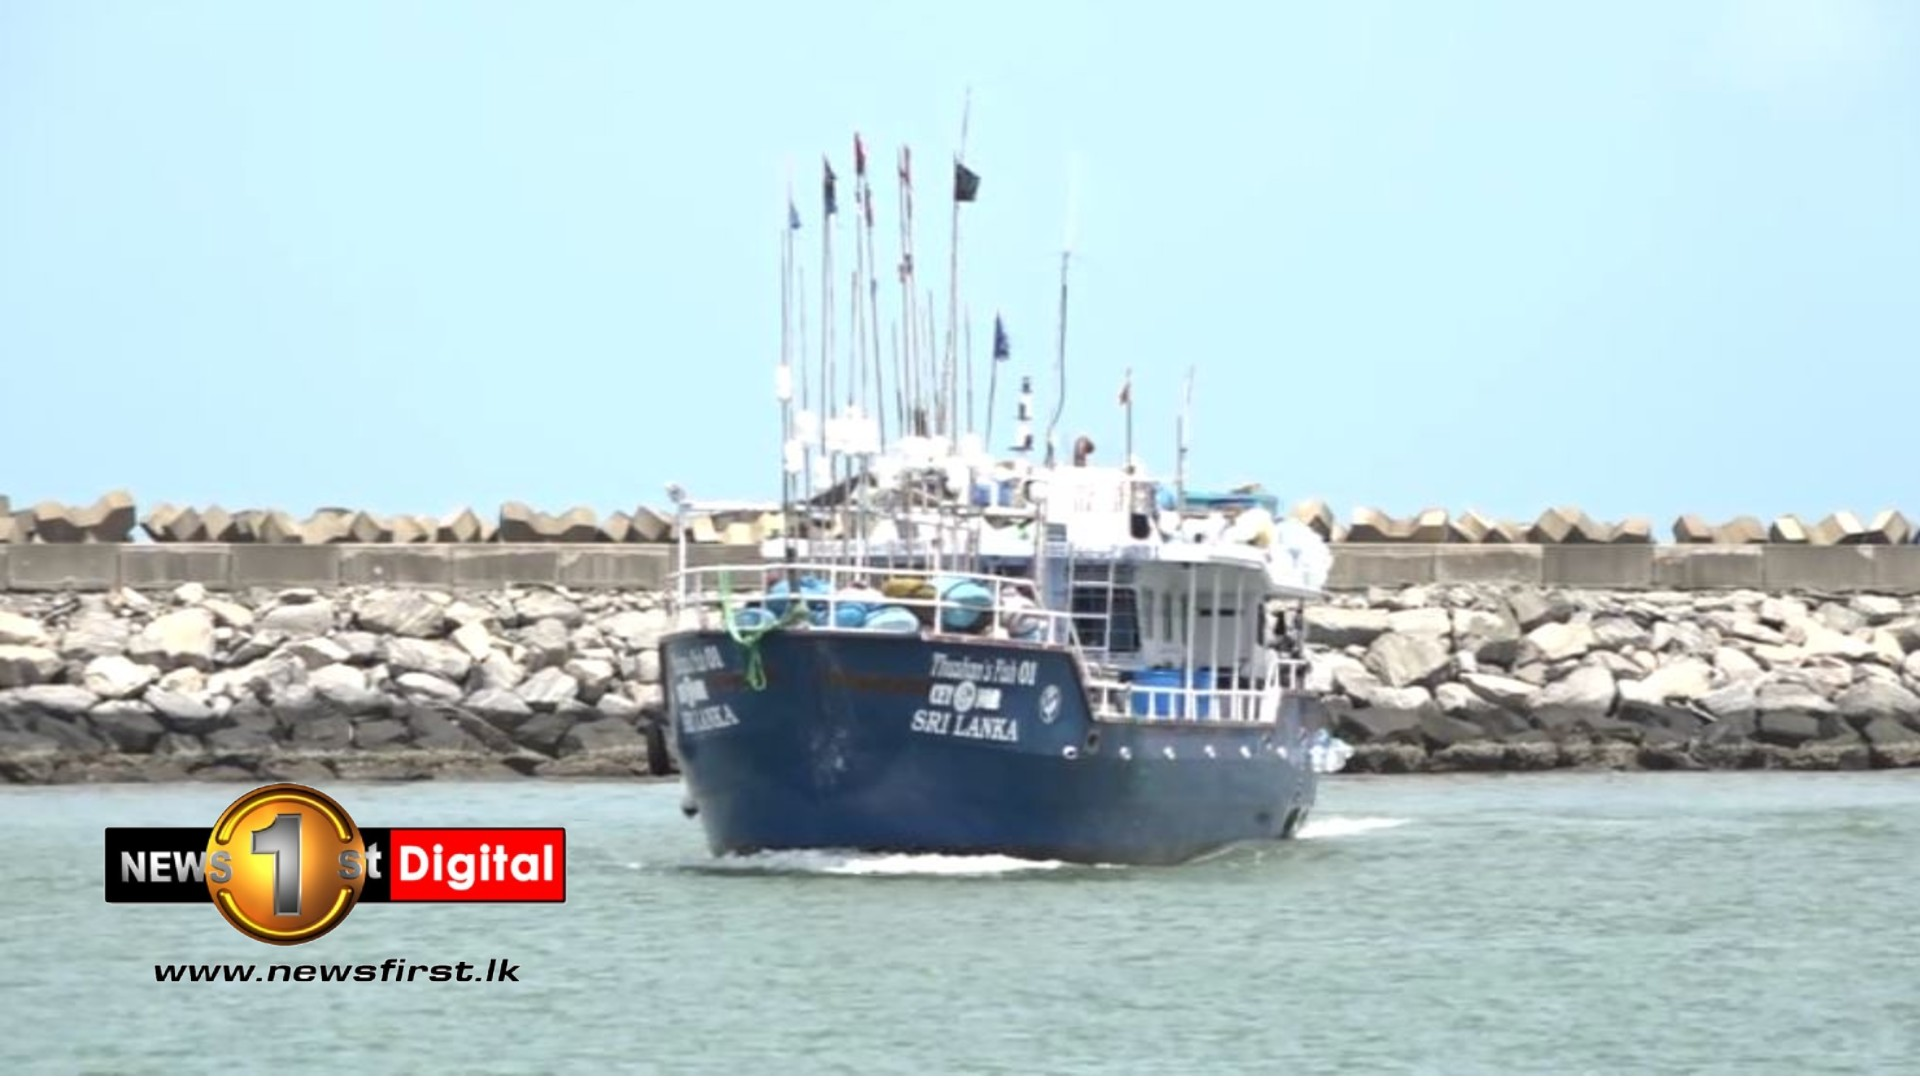 India rejects claims that its Navy attacked Sri Lankan Fishermen